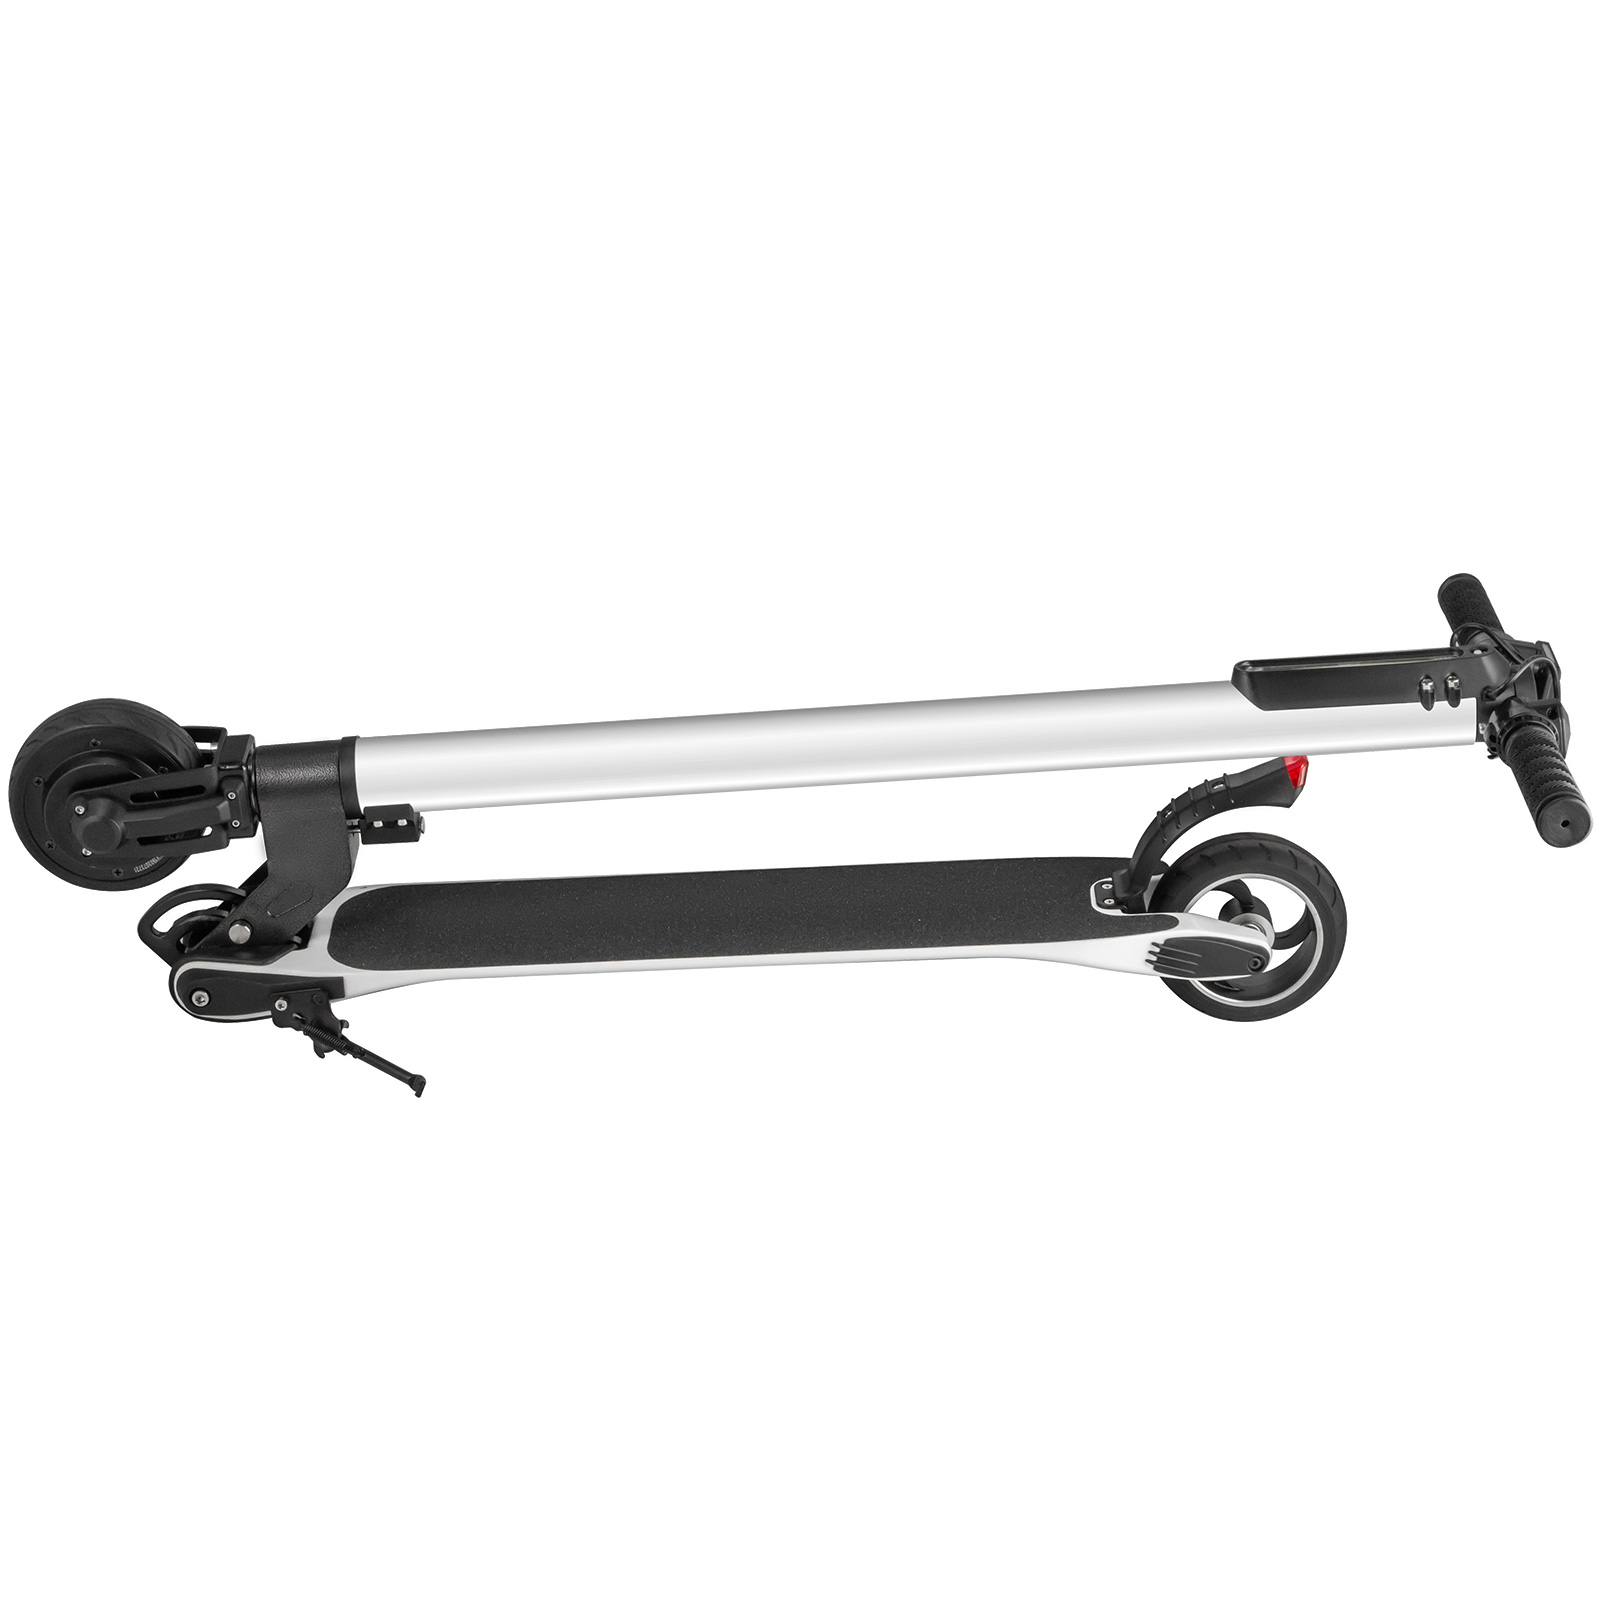 5-034-Electric-Scooter-8-8-amp-10-4Ah-Ultralight-Foldable-Skateboard-For-Adult-Teenage thumbnail 36